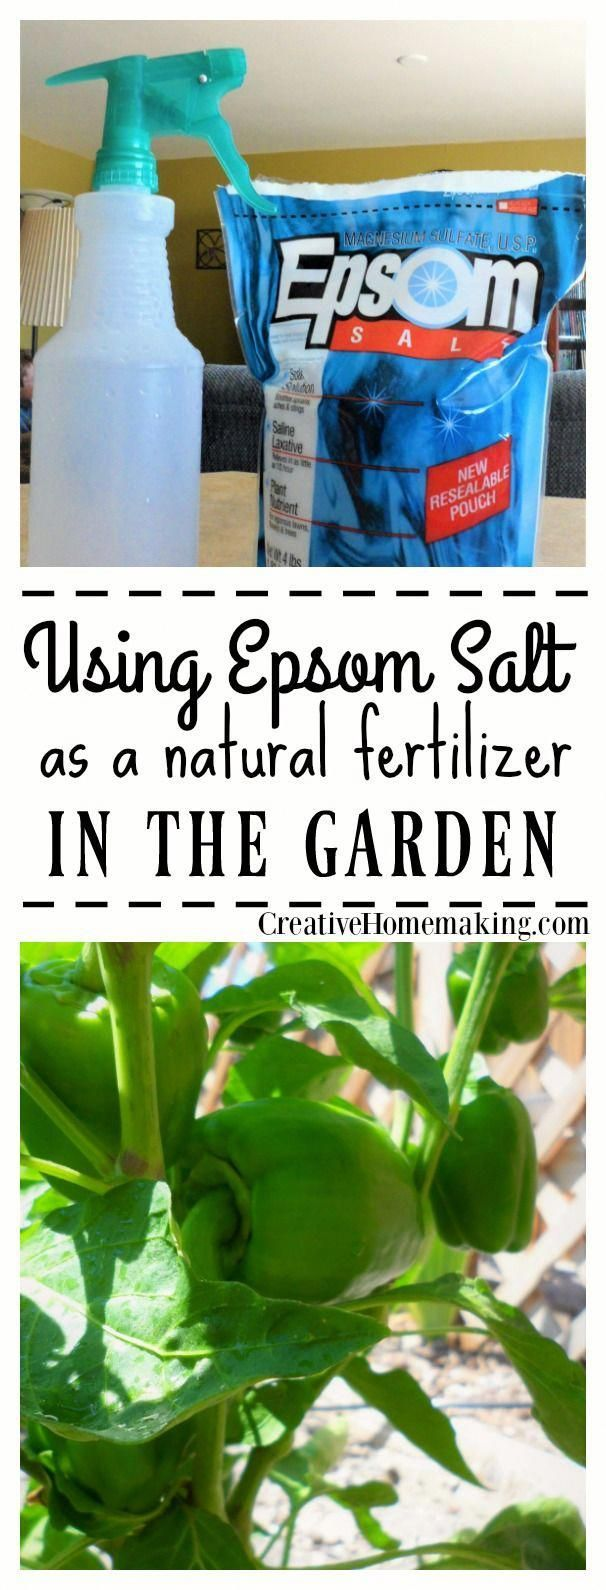 Epsom Salt as a Natural Fertilizer in the Garden Epsom salt can be used as a natural fertilizer in the garden. Used in a spray-on solution, it helps fight magnesium deficiency in tomatoes and bell peppers and promotes vegetable growth.Epsom salt can be used as a natural fertilizer in the garden. Used in a spray-on solu...